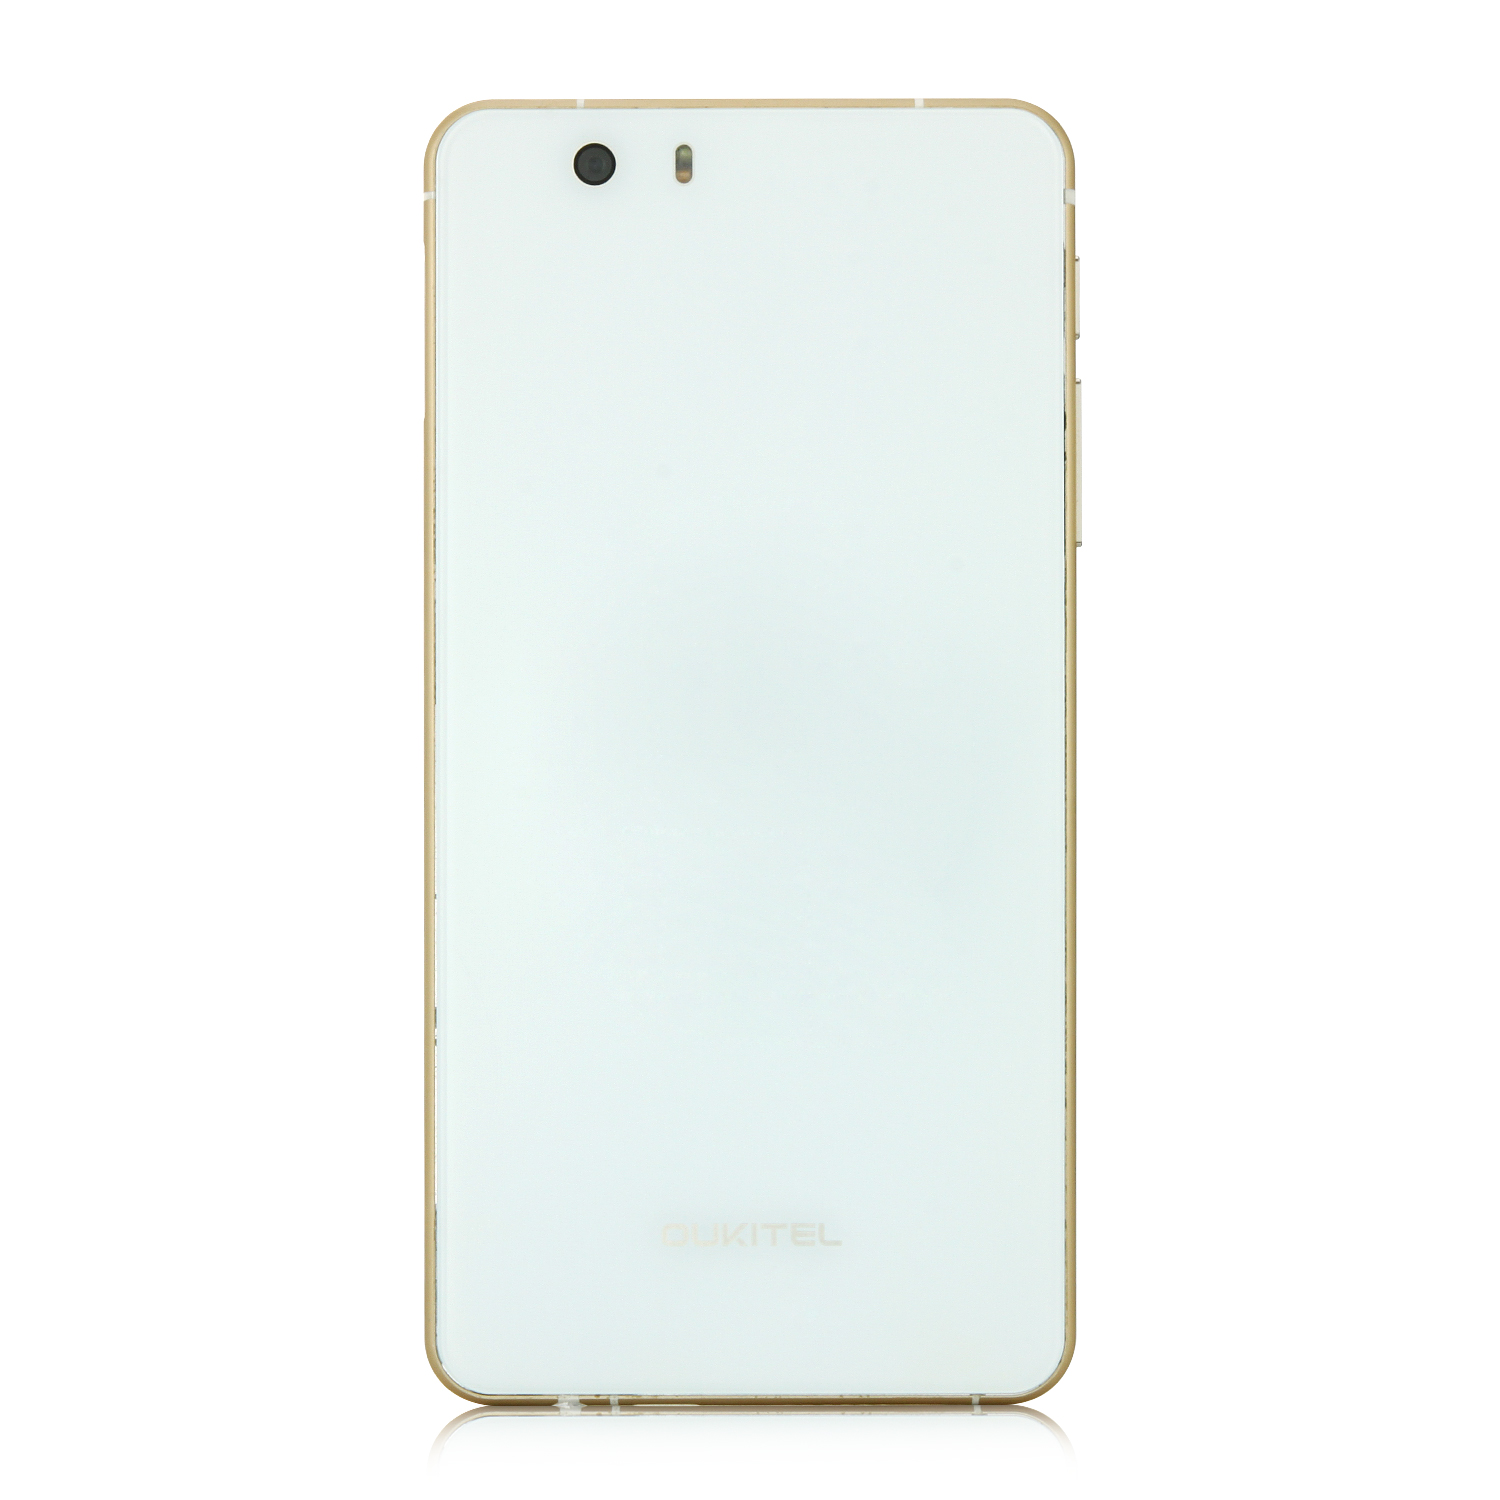 OUKITEL U9 Smartphone 5.5 Inch FHD Arc Screen 3GB 16GB MTK6753 Octa Core 4G LTE- White